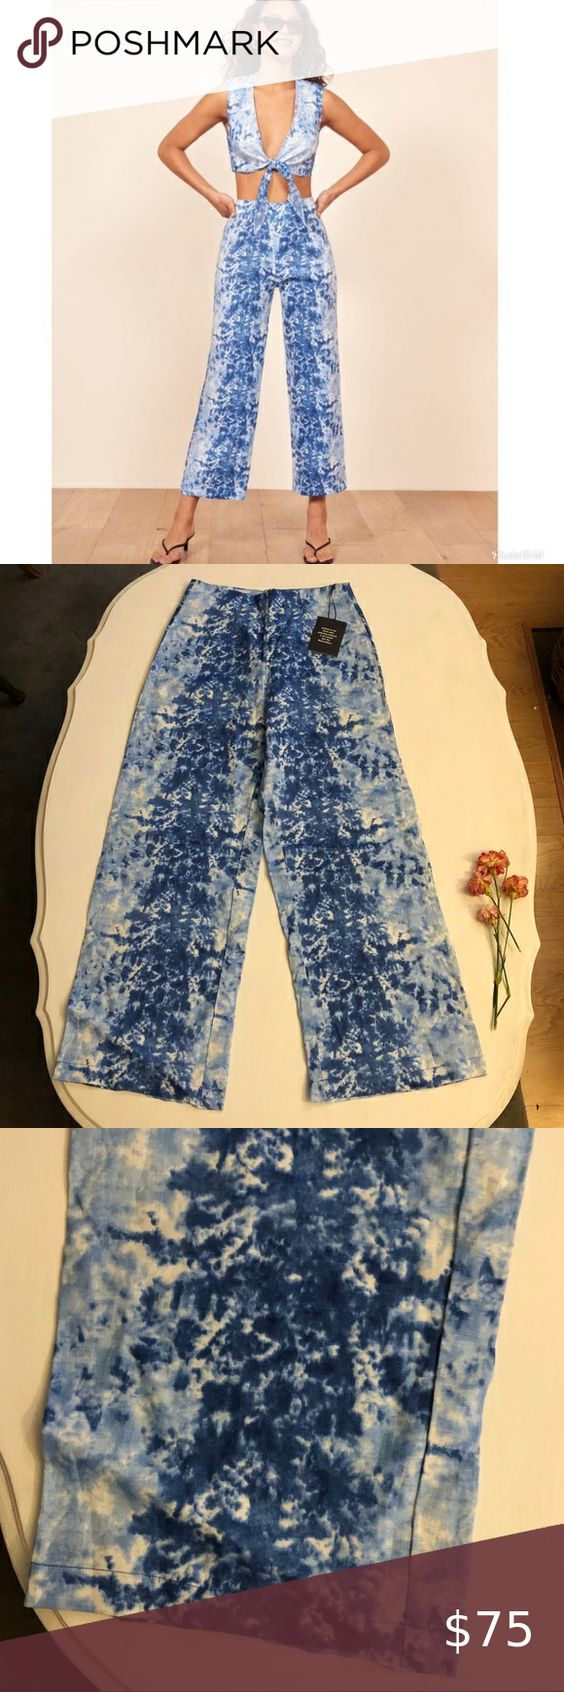 Nwt Reformation Fawn Two Piece Tie Dye Pants Tie Dye Pants Pants For Women Tie Dye [ 1692 x 564 Pixel ]